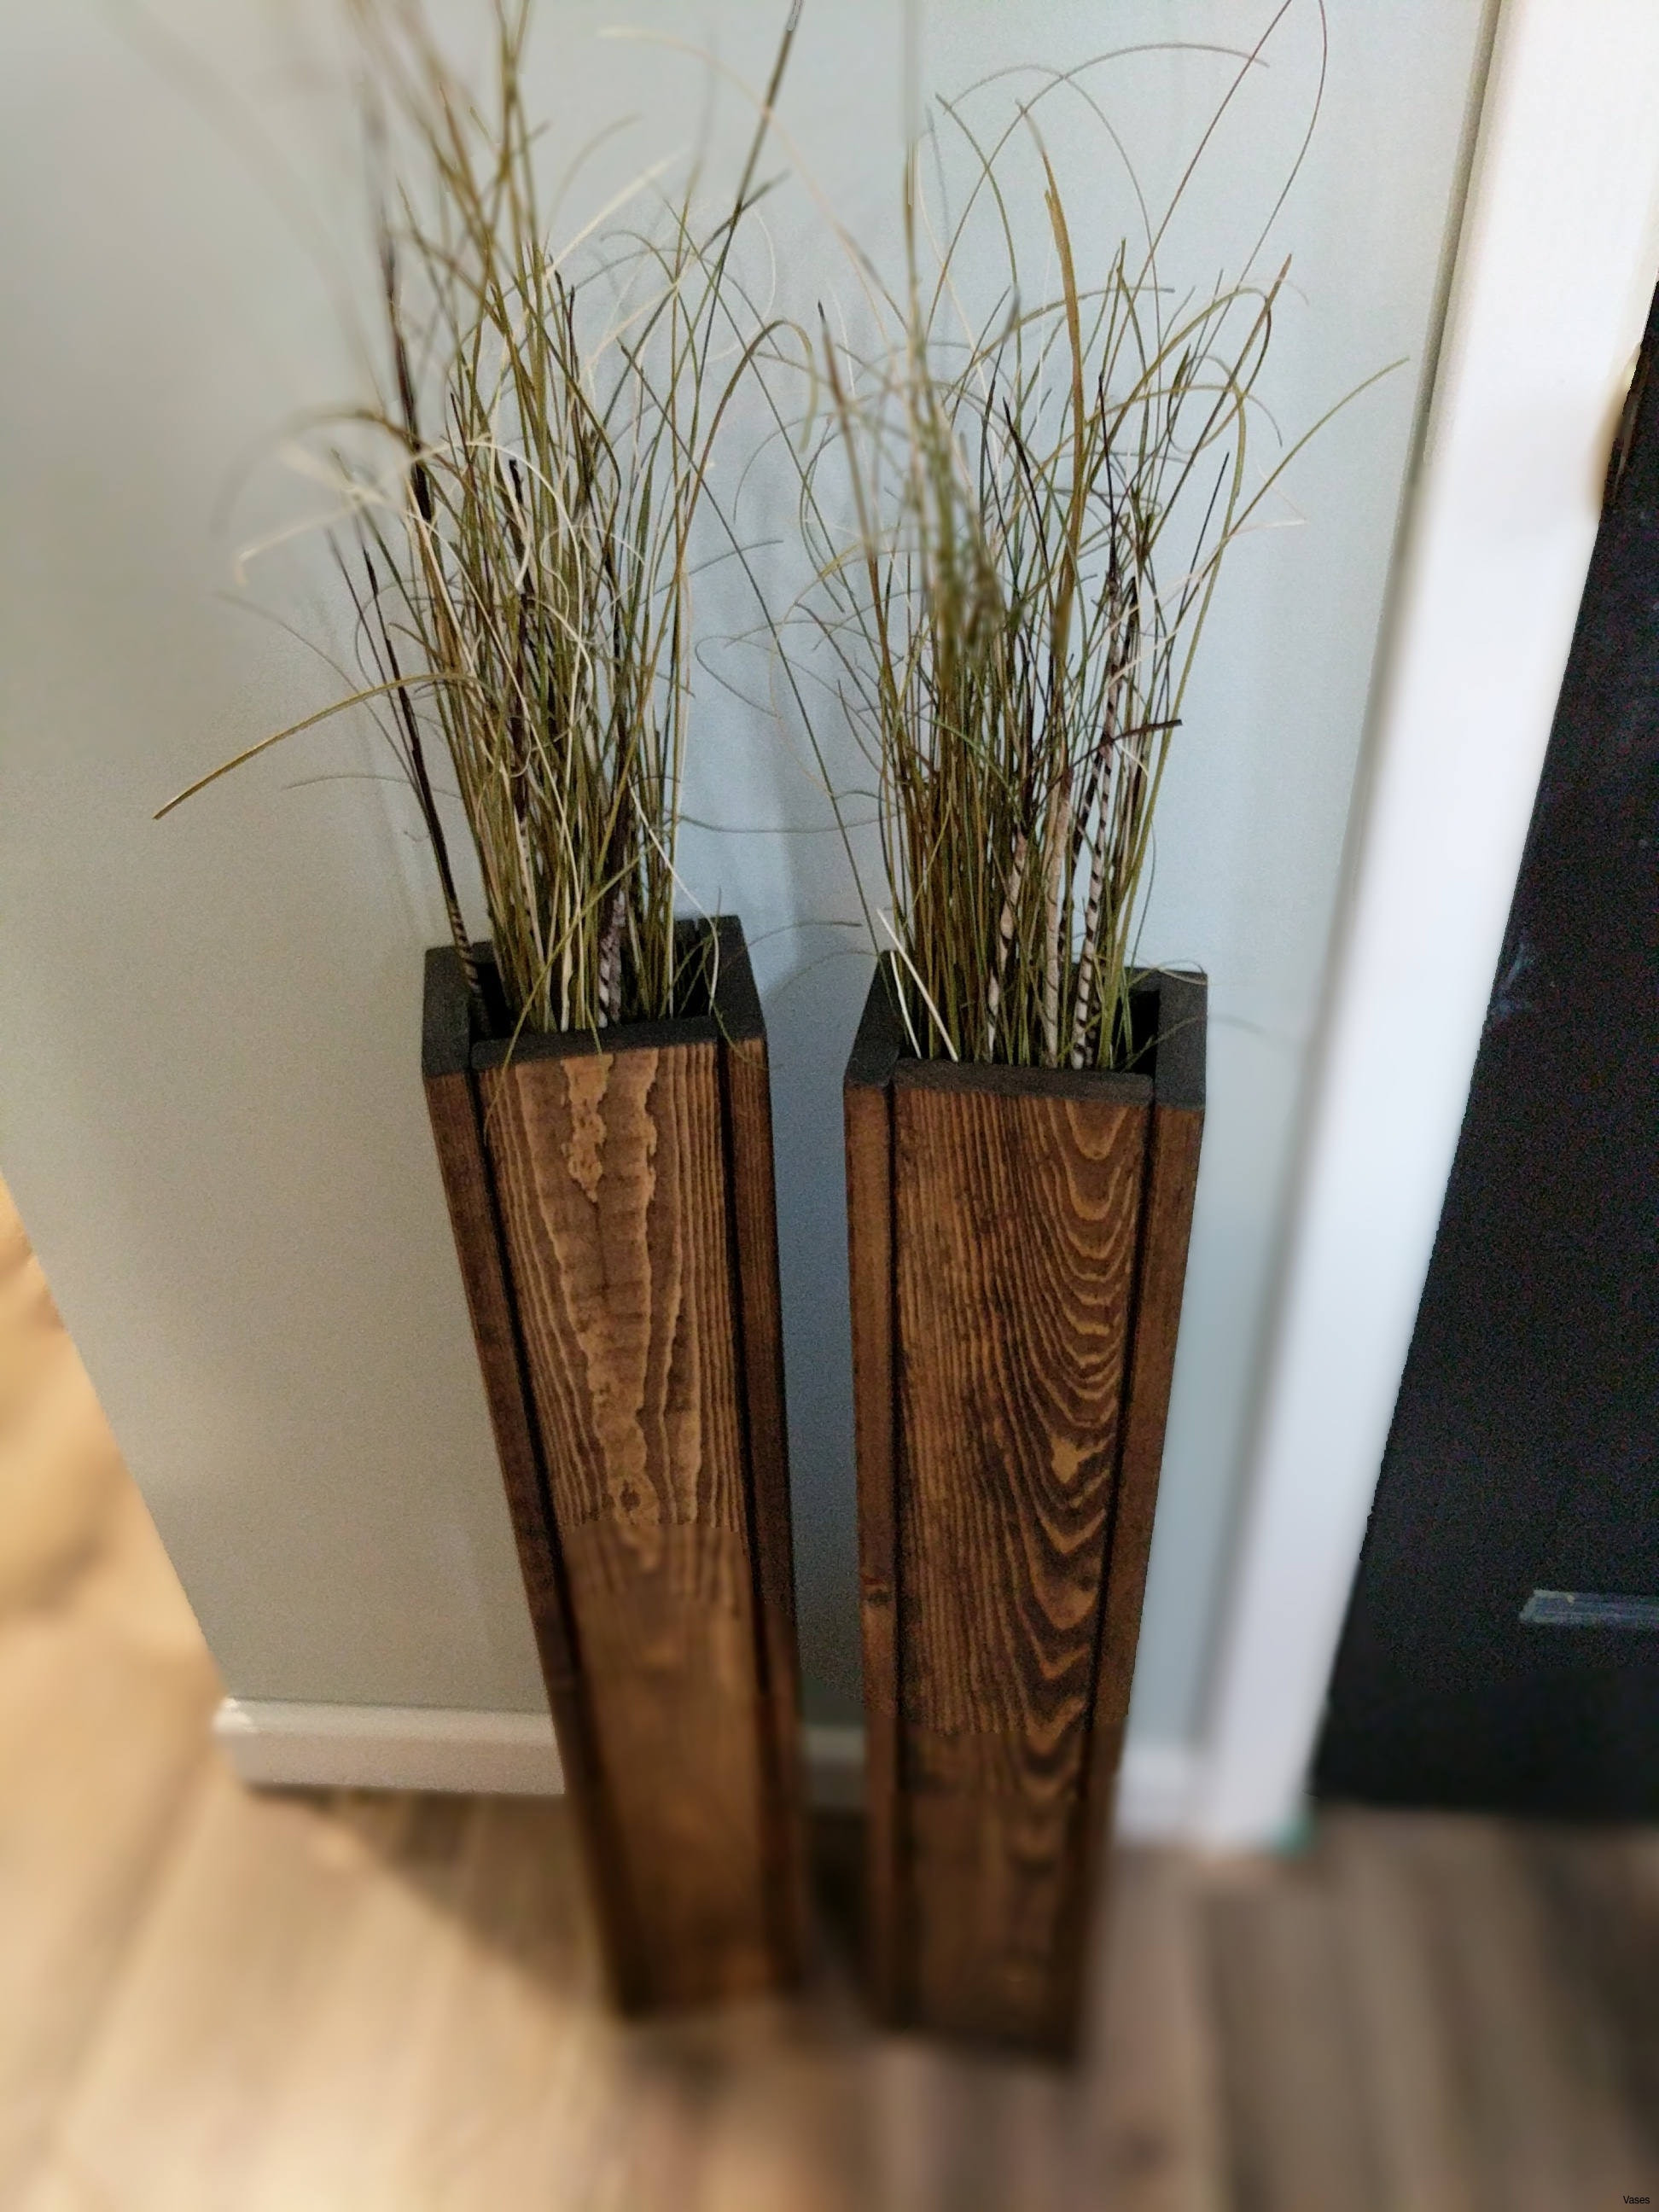 10 Fashionable Buy Floor Vases Online 2021 free download buy floor vases online of floor vase branches pictures vases vase with twigs red sticks in a i for floor vase branches pictures vases vase with twigs red sticks in a i 0d floor and lights